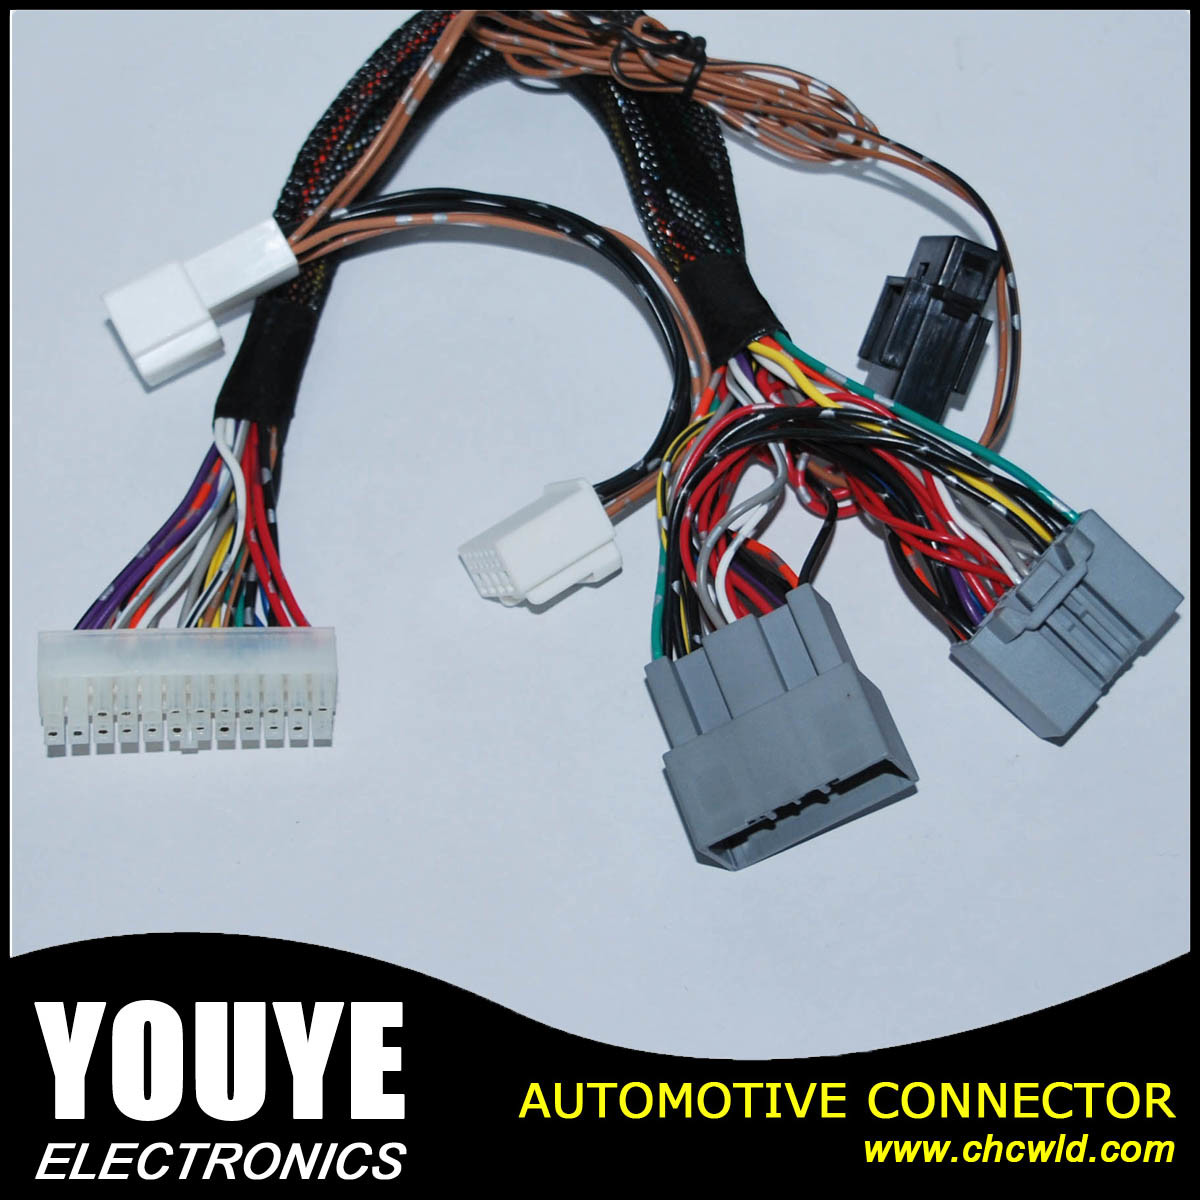 Automotive Wiring Harness Uk : Auto wiring harness connectors honda library